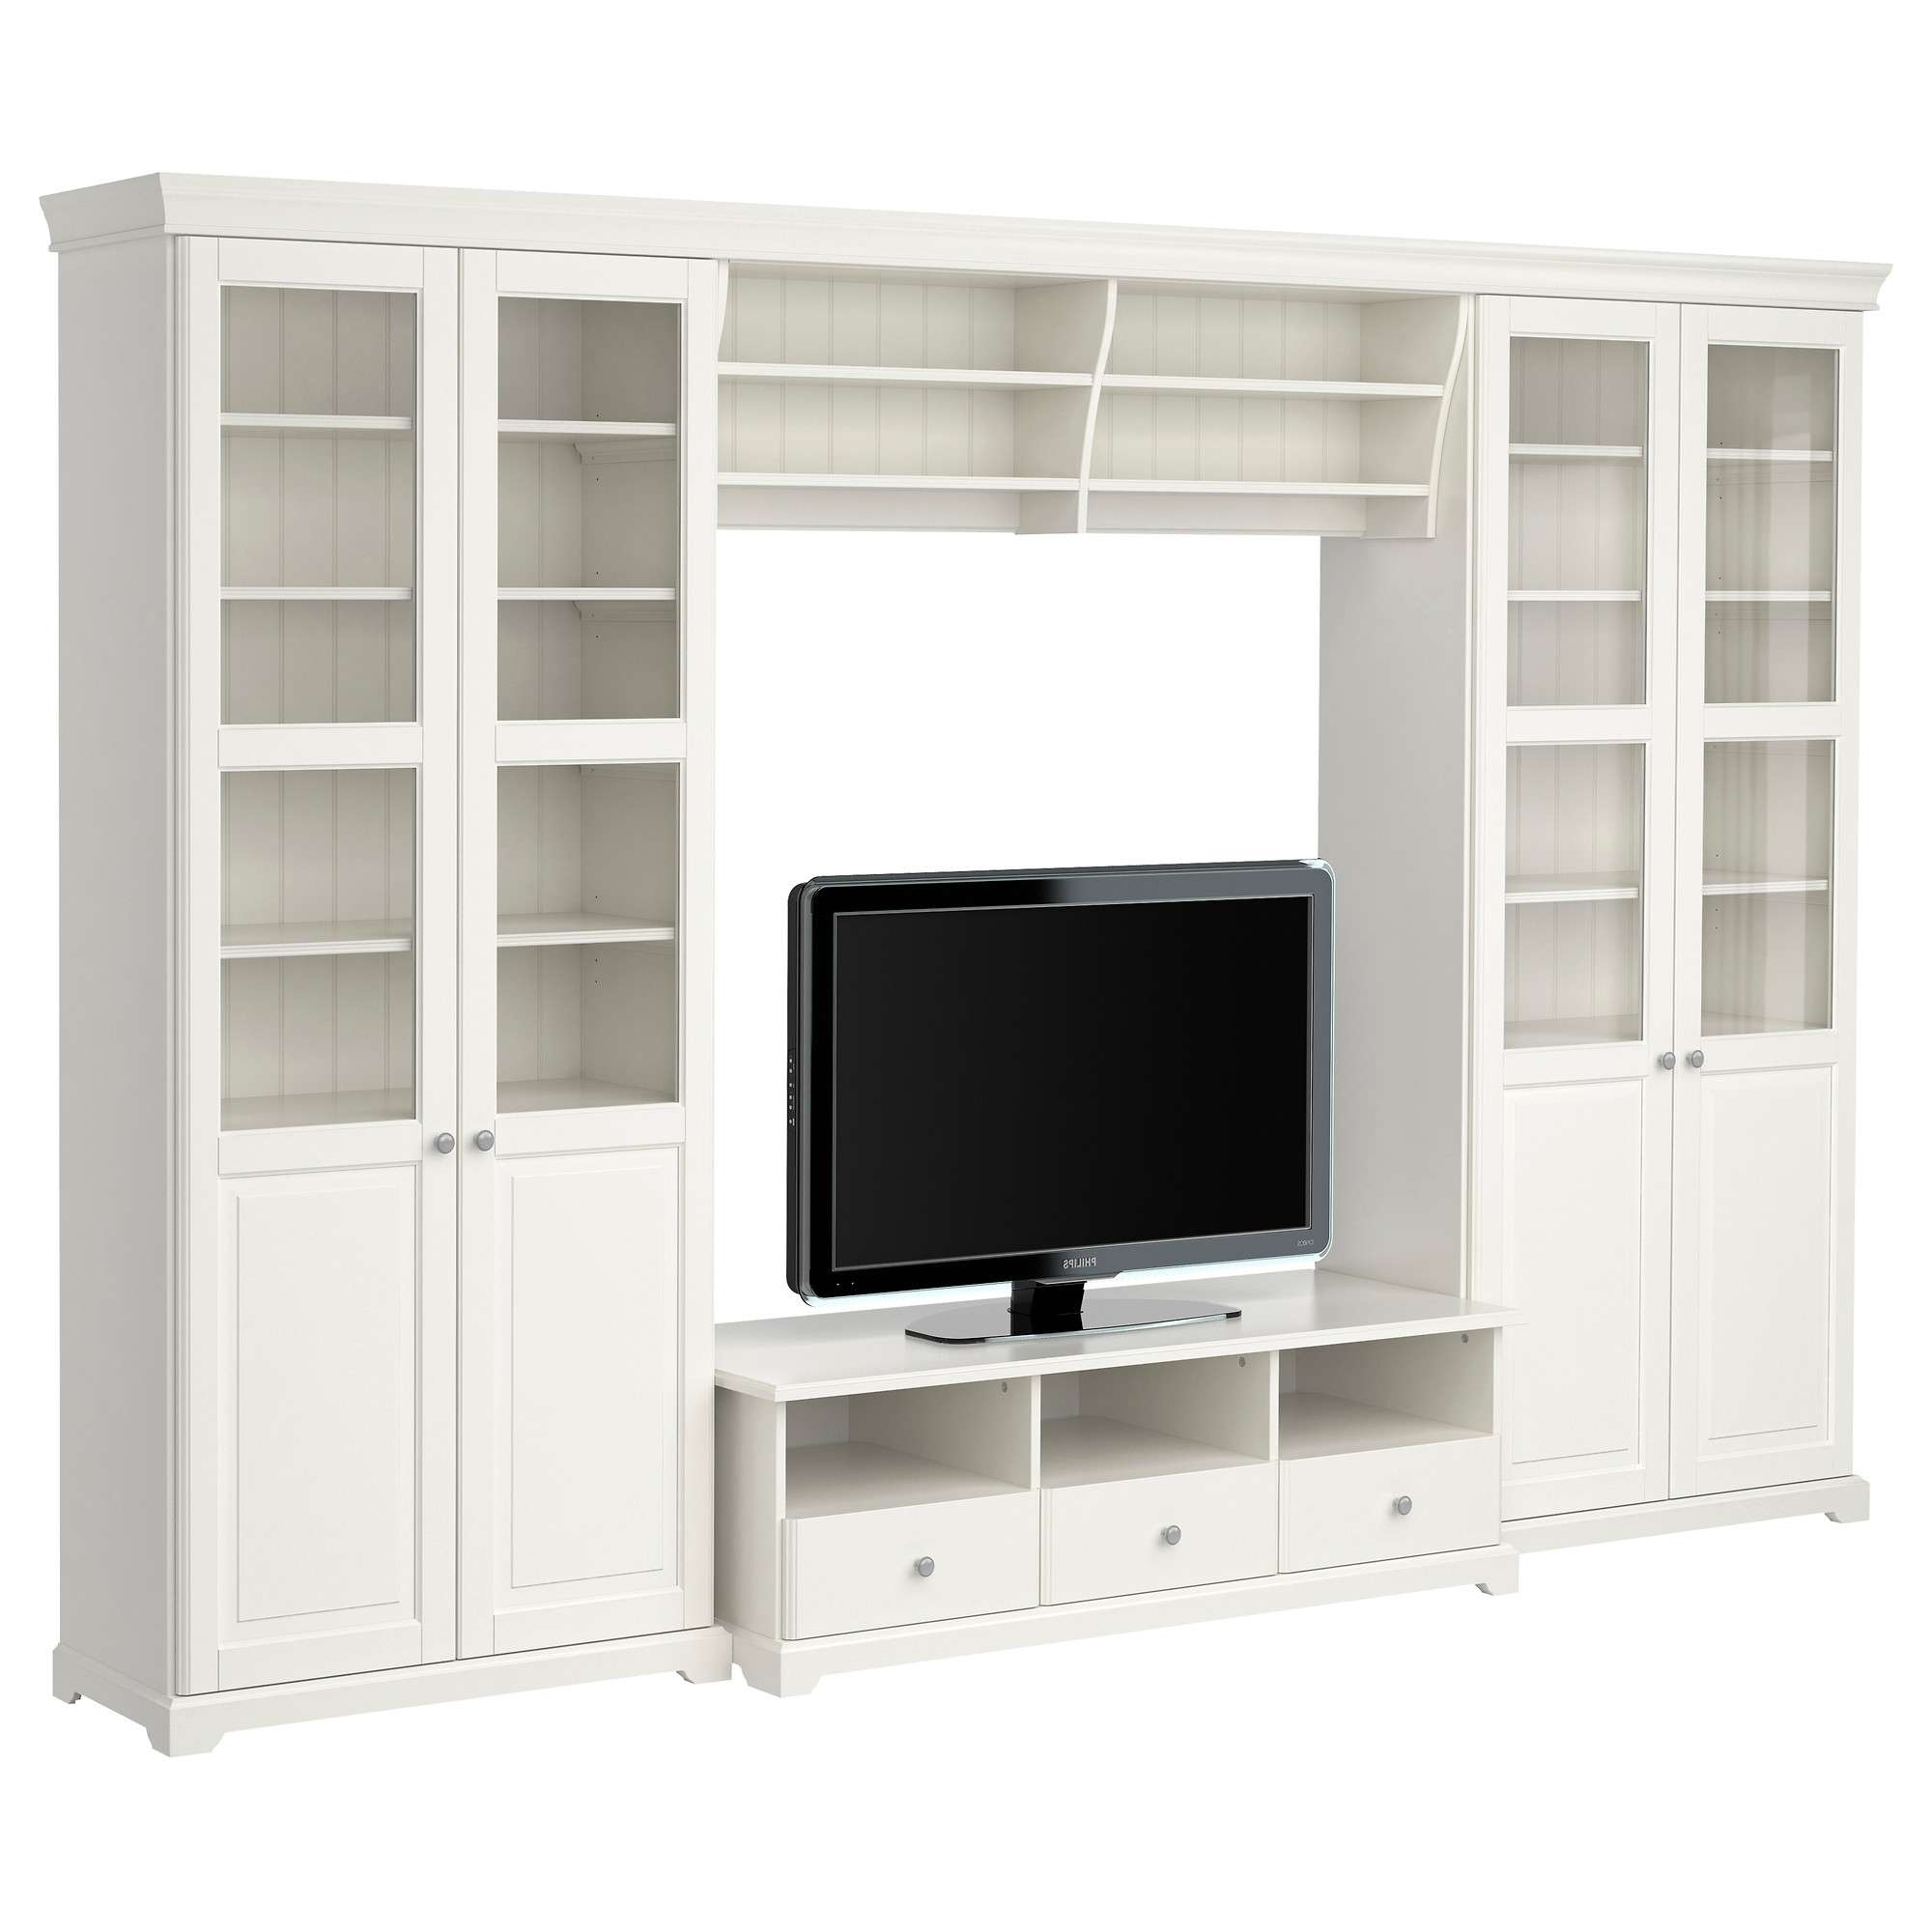 Liatorp Tv Storage Combination – Ikea In Ikea Built In Tv Cabinets (View 19 of 20)